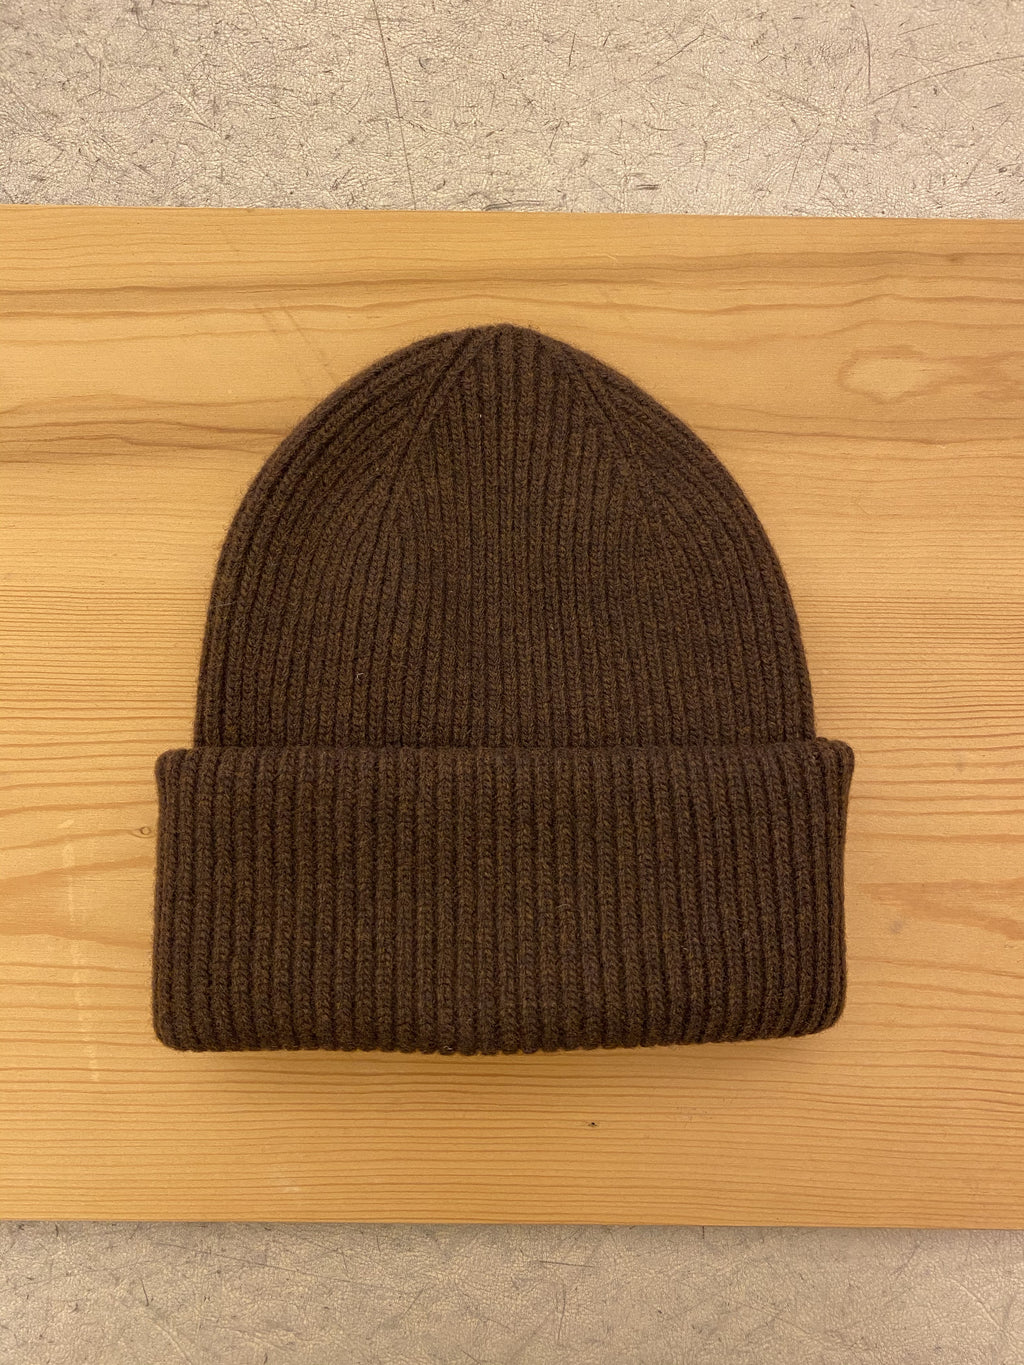 Beanie Hat COLORFUL STANDARD - Chocolate